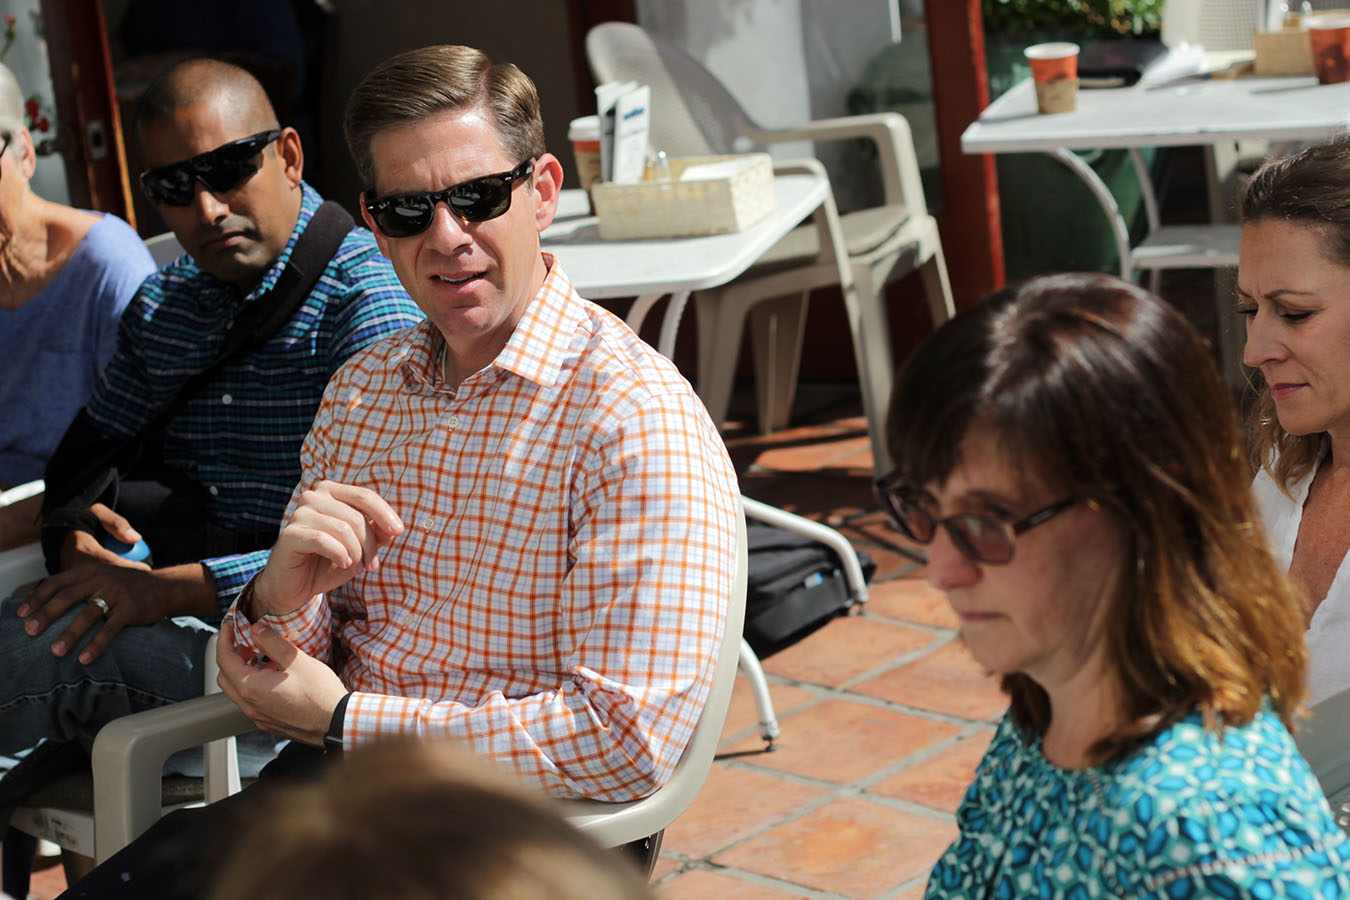 With sun beating down on the patio of Café Calypso in San Clemente, Congressman Mike Levin begins rolling up sleeves while listening to constituents of California's 49th Congressional District on Wednesday, May 29. Photo: Shawn Raymundo